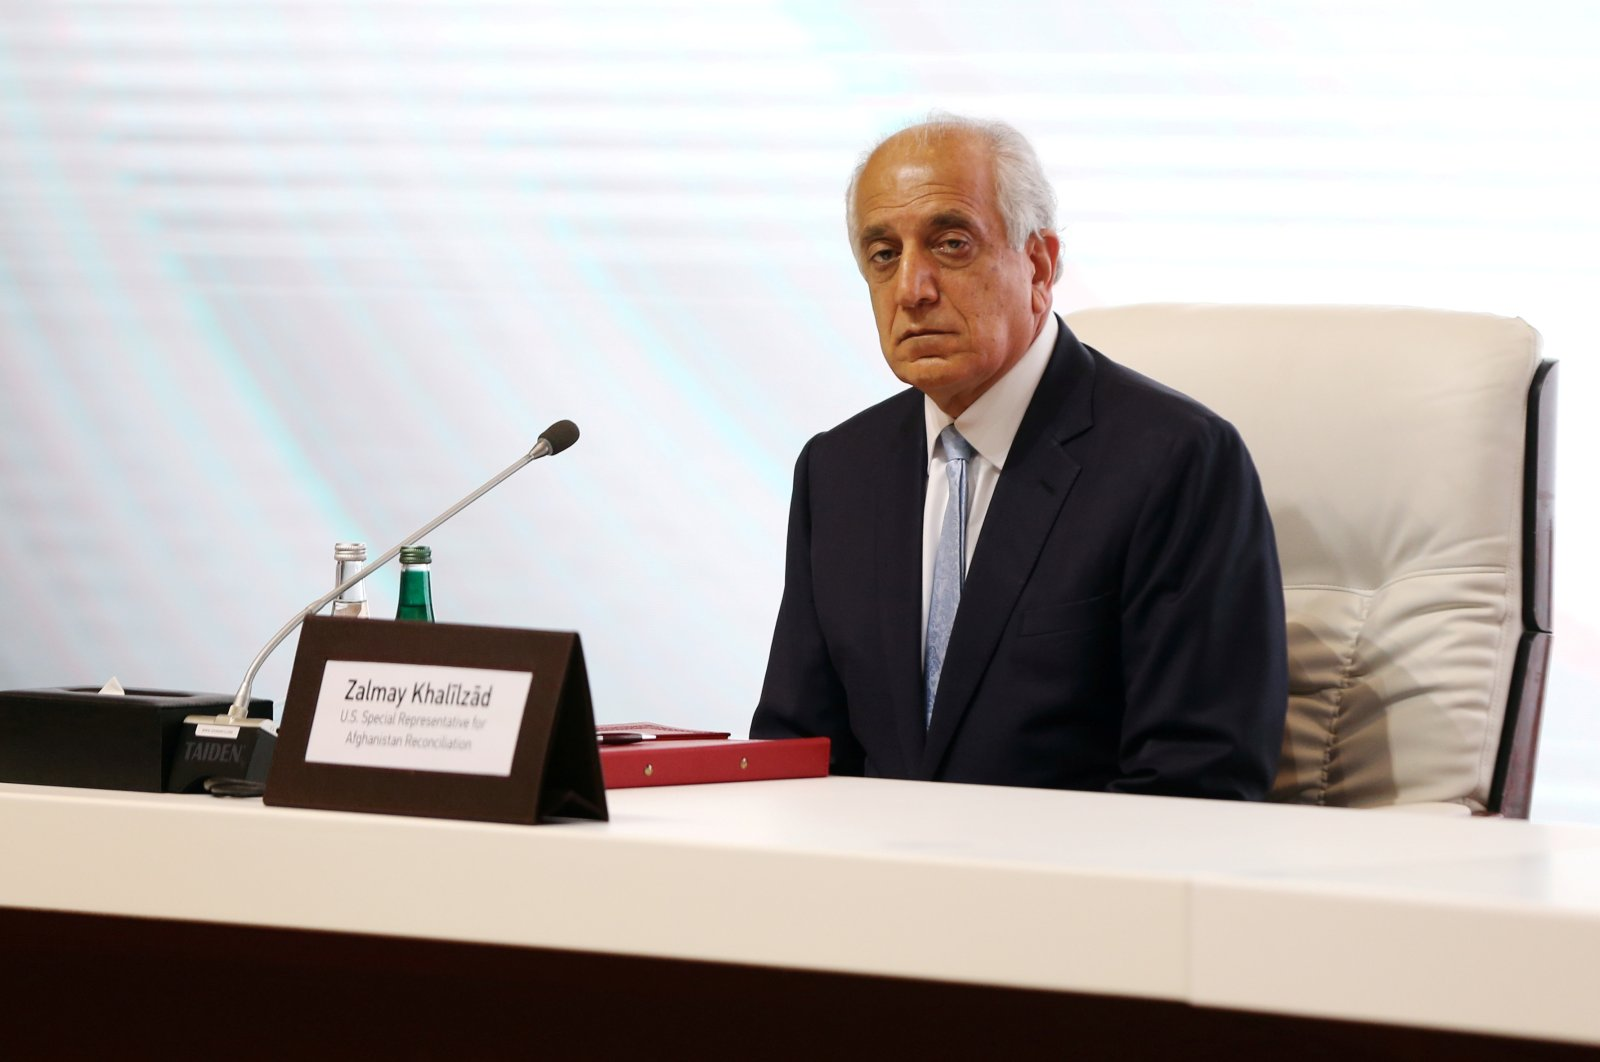 Zalmay Khalilzad, U.S. envoy for peace in Afghanistan is seen during talks between the Afghan government and Taliban insurgents in Doha, Qatar, Sept. 12, 2020. (REUTERS Photo)